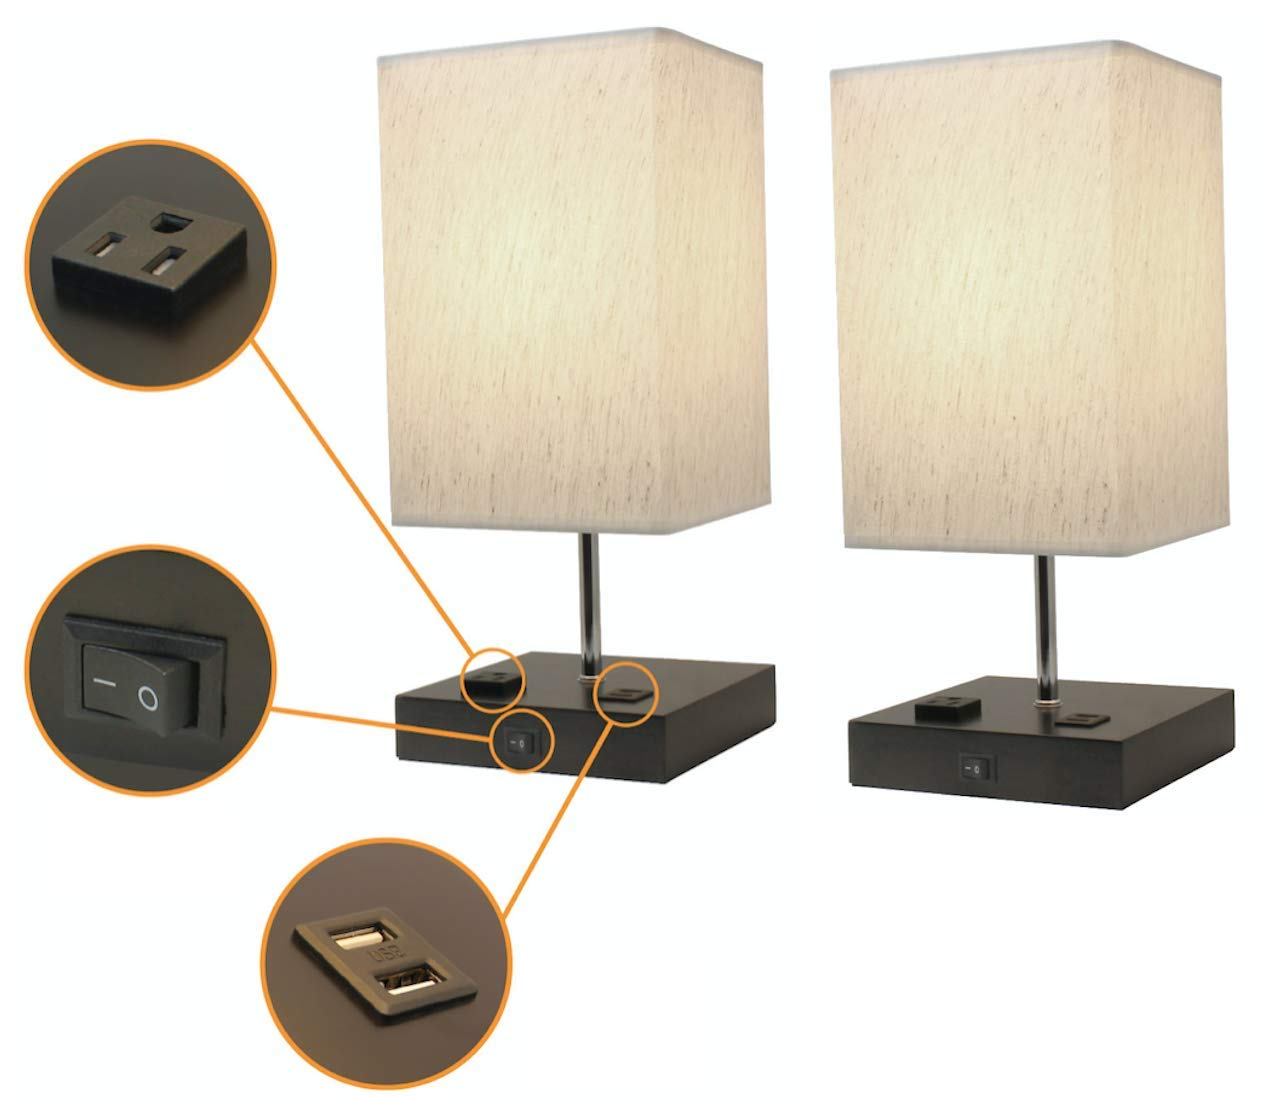 Paradis Bedside Table Lamps with 2 USB Charging Outlets 1 Power Outlet Port. Modern Design, Wood Base with Fabric Shade for Night Stand. Desk Lamp Nightstand Lamp – Charges Electronics Pack of 2